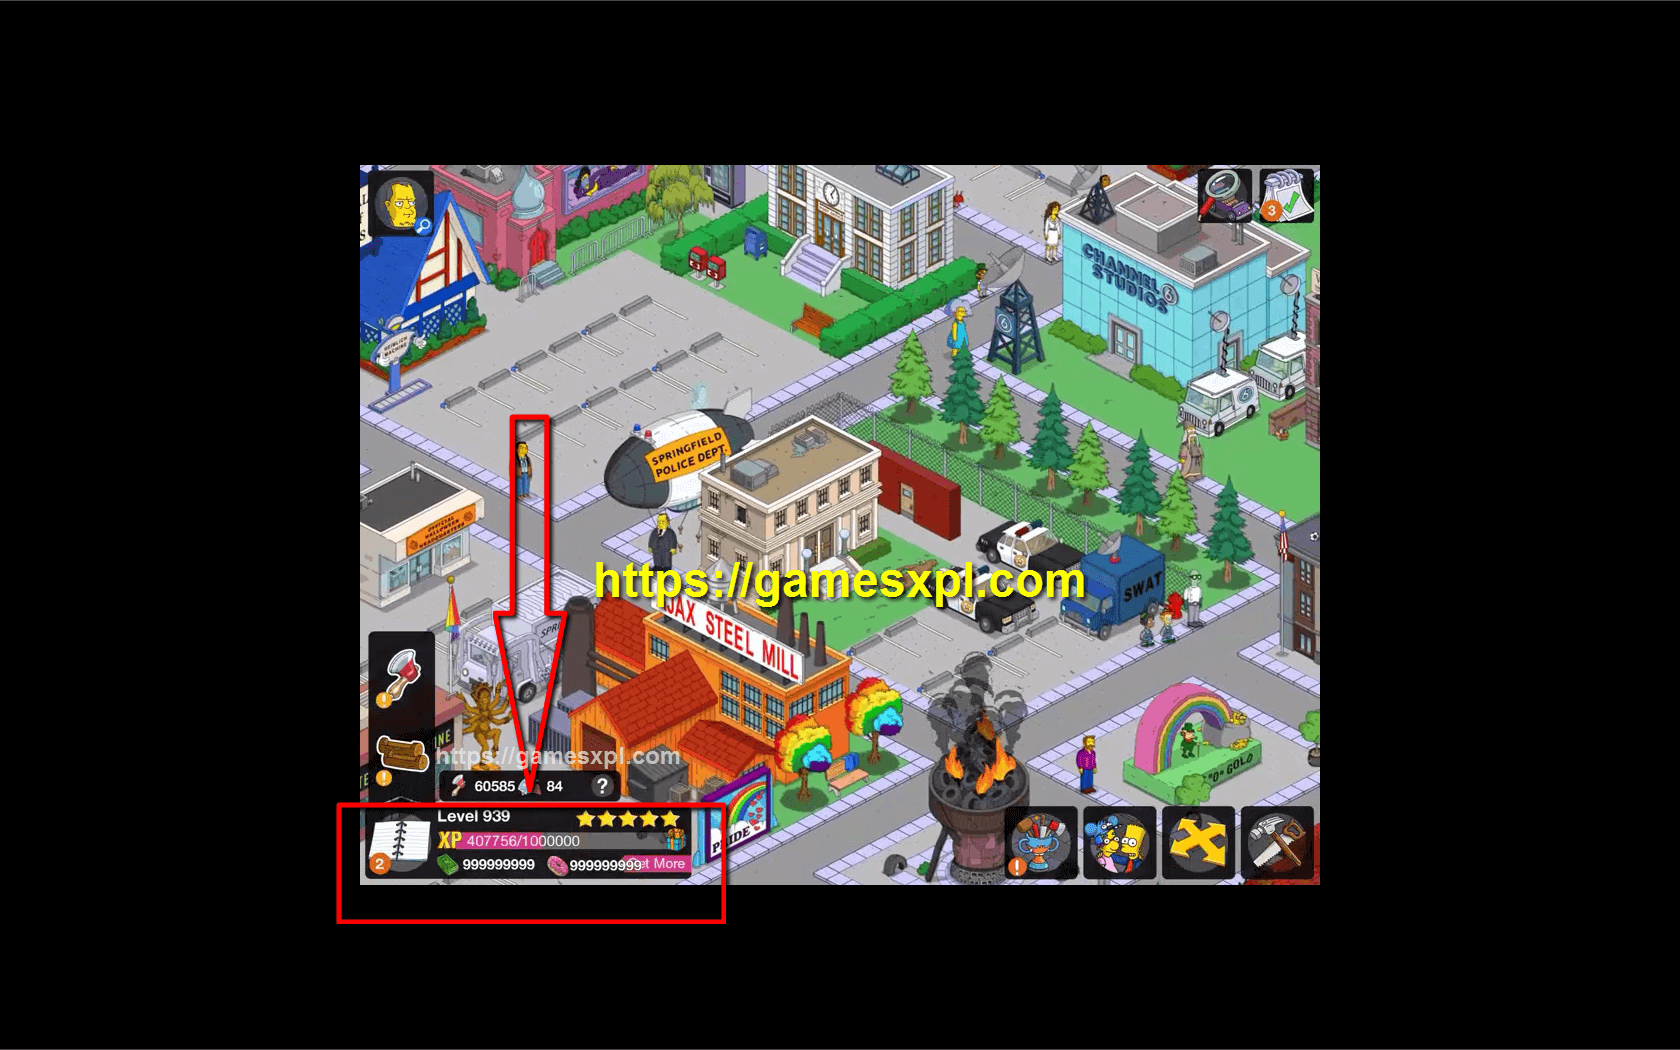 The Simpsons Tapped Out Hack Mod Apk-How to Get Unlimited Donuts and Money-iOS-Android-Windows